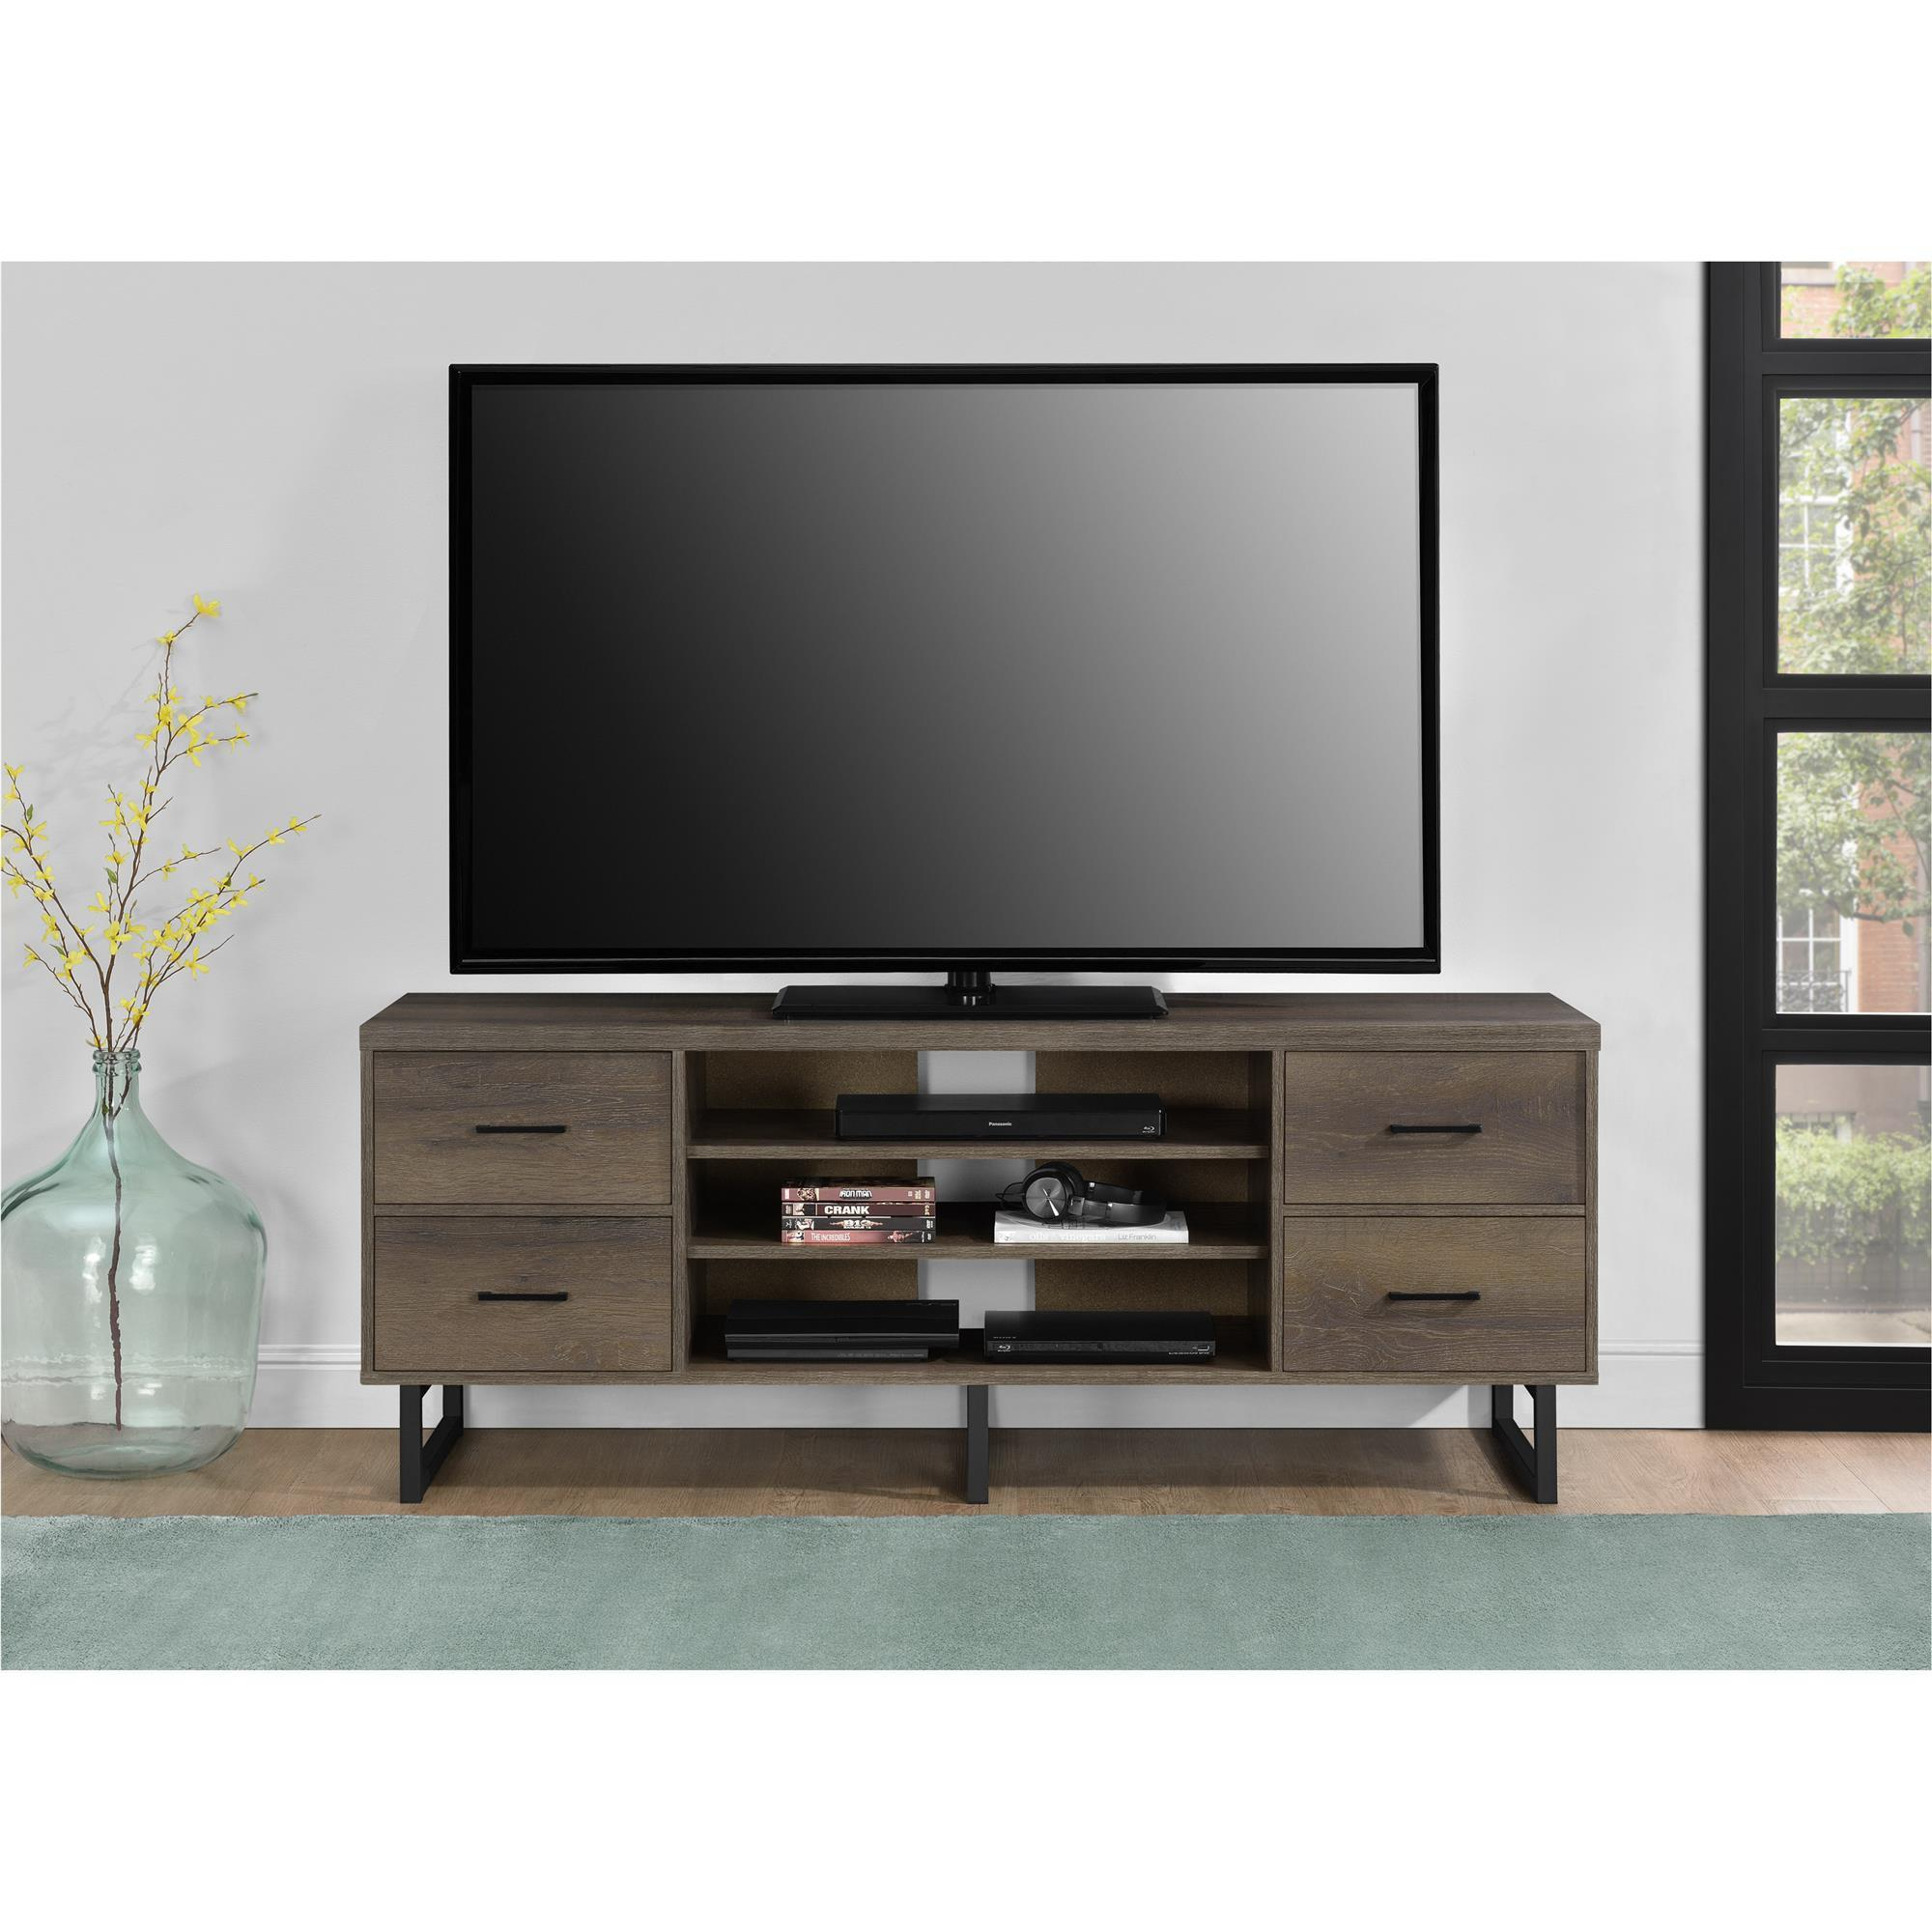 Shop Ameriwood Home Candon Sonoma Mocha Oak 60 Inch Tv Stand With With Regard To Canyon 54 Inch Tv Stands (View 21 of 30)